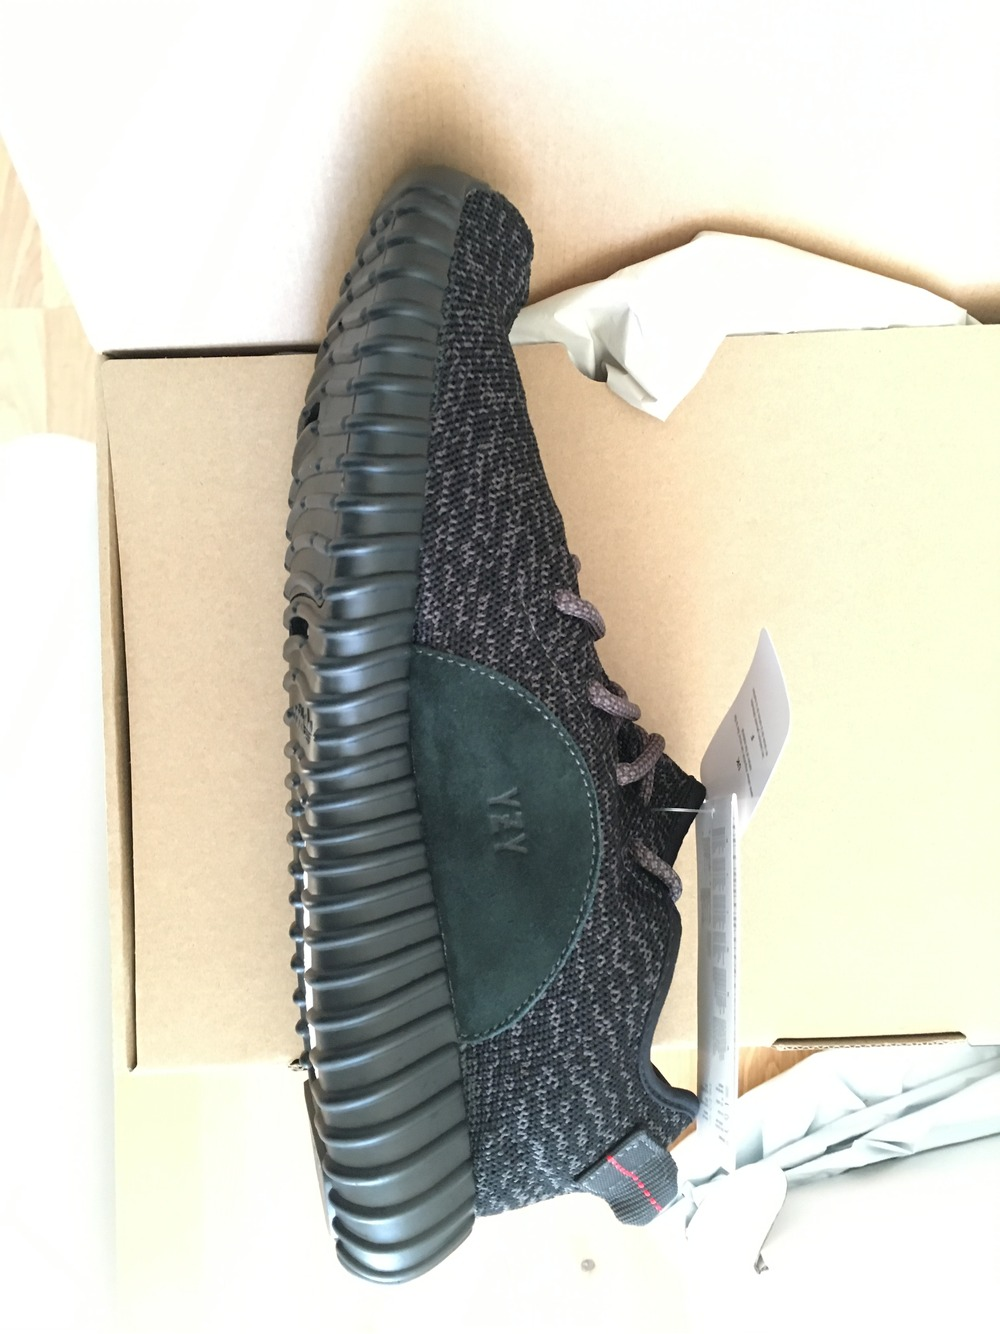 2016 Kanye West Yzy 350 Boost Pirate Black Sneaker 1:1 Quality